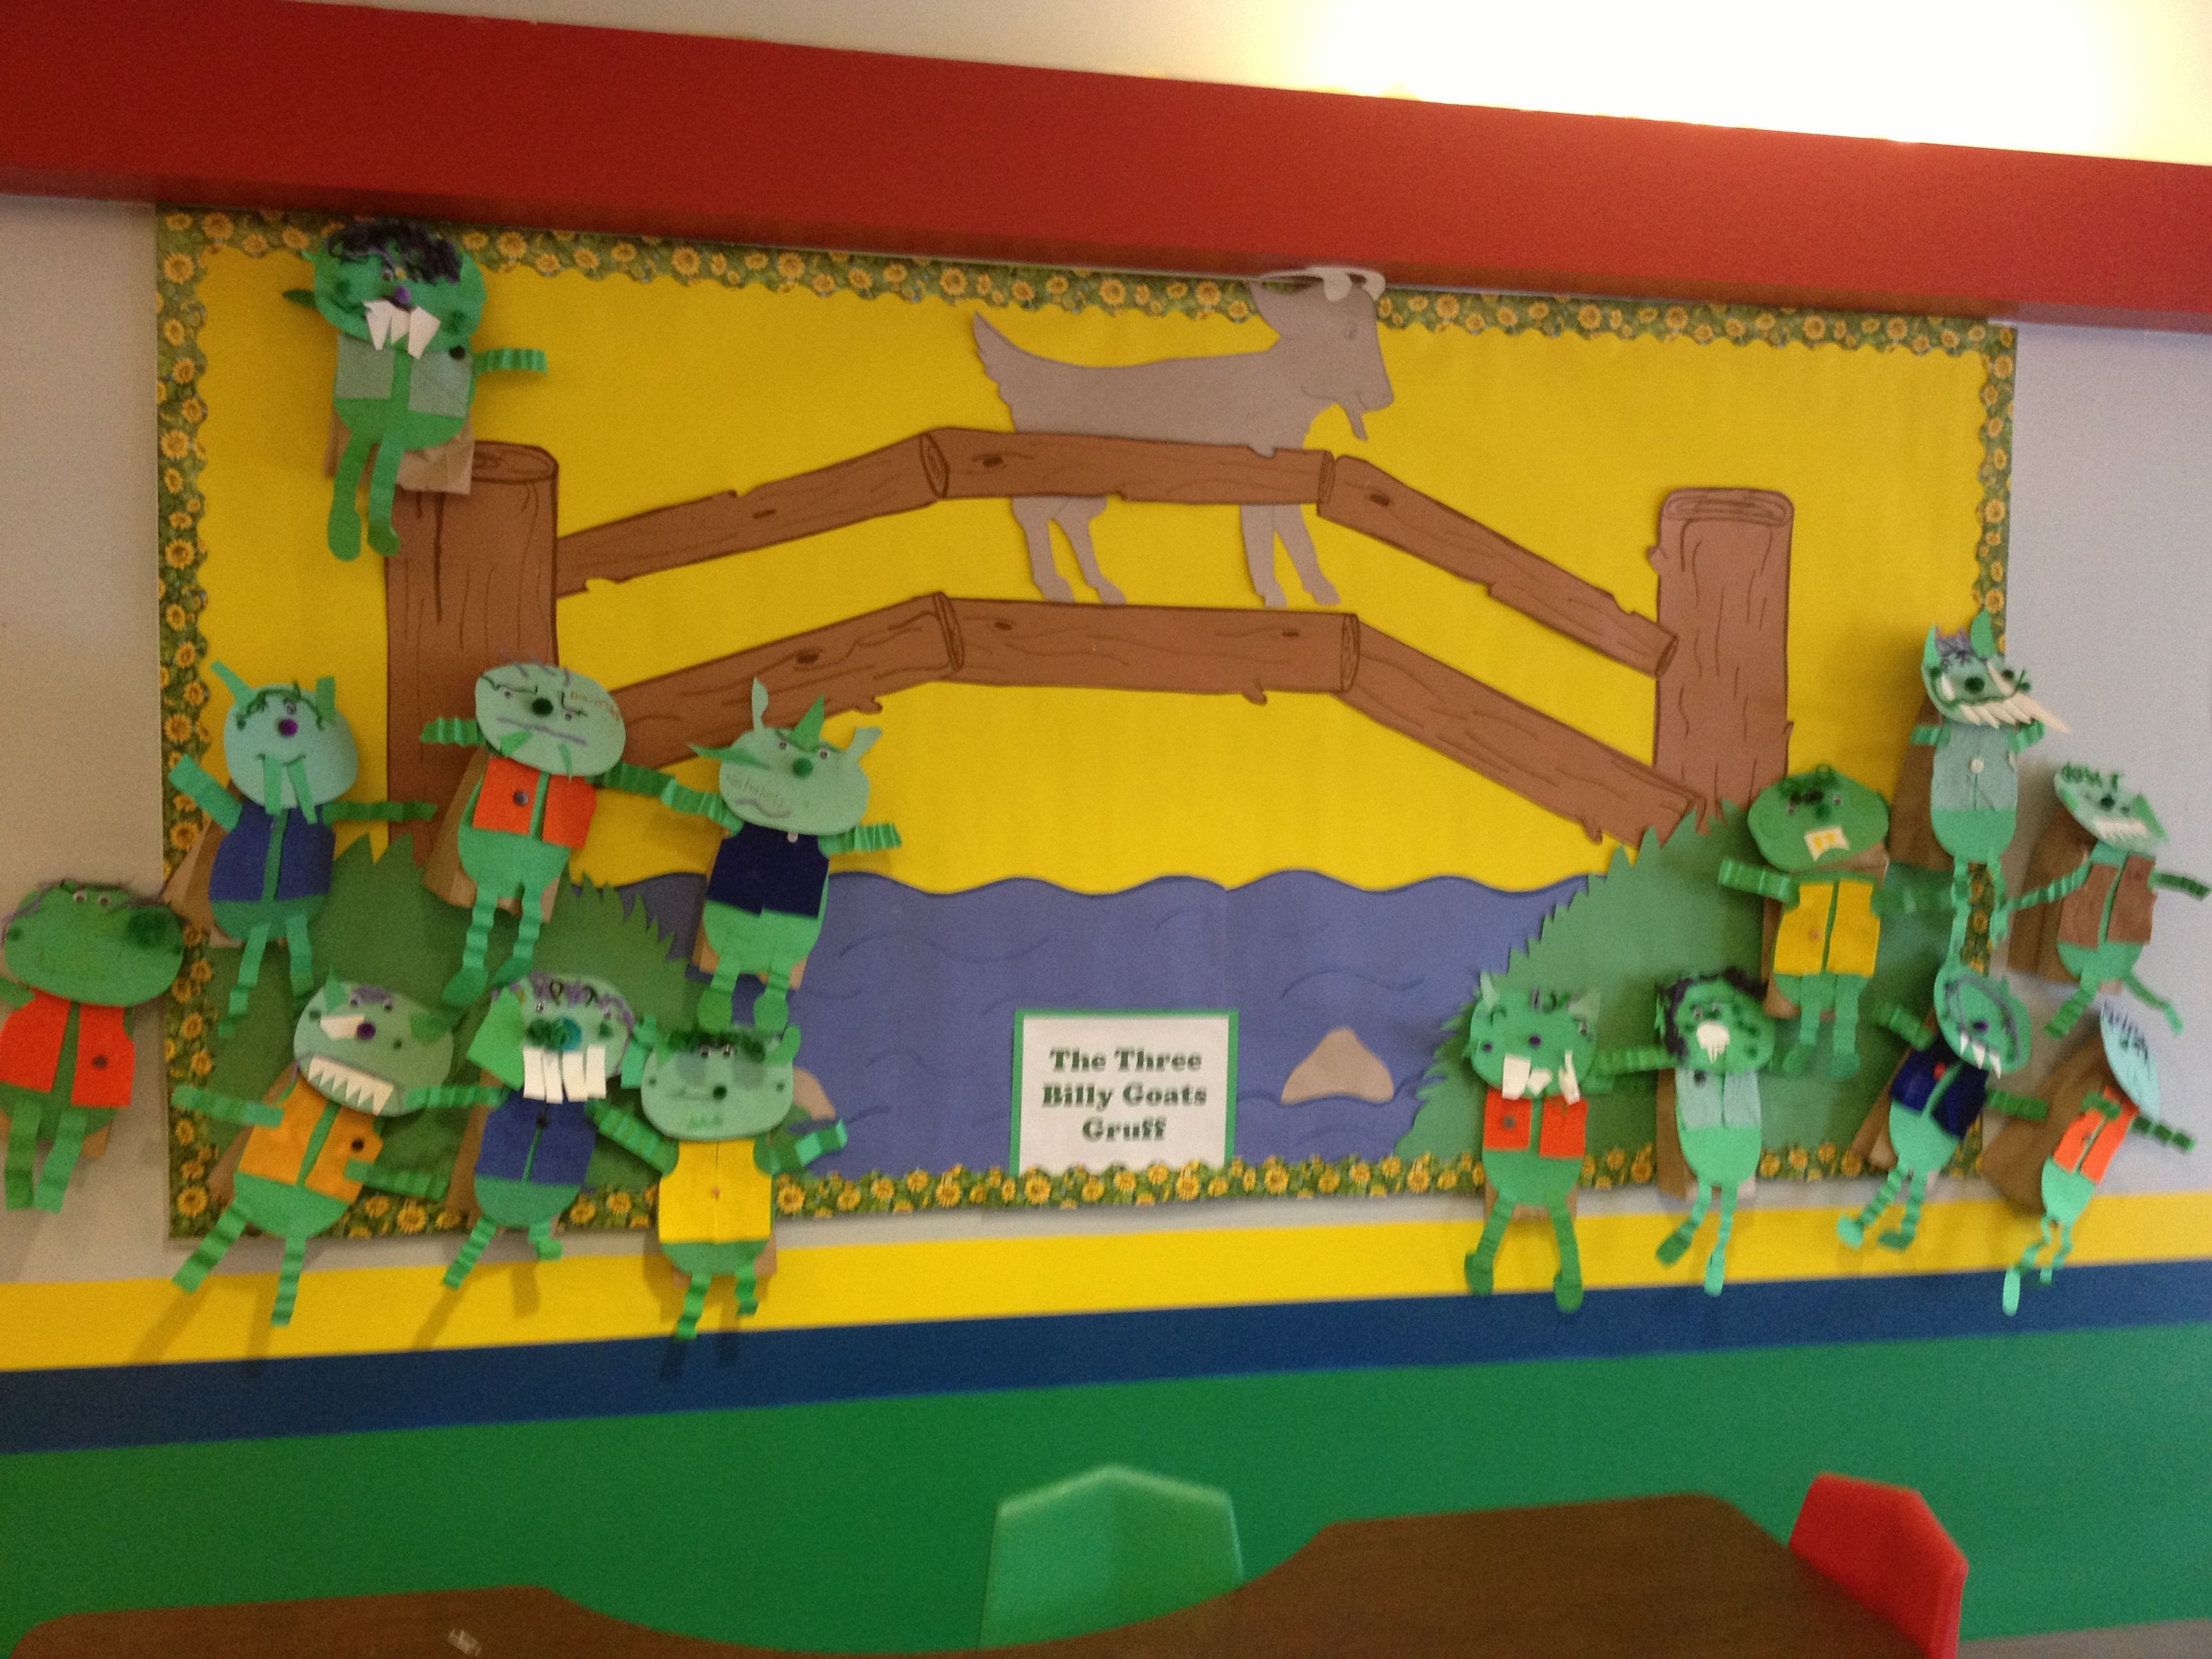 Bulletin Board For Three Billy Goats Gruff The Students Made Paper Bag Puppets Of Trolls